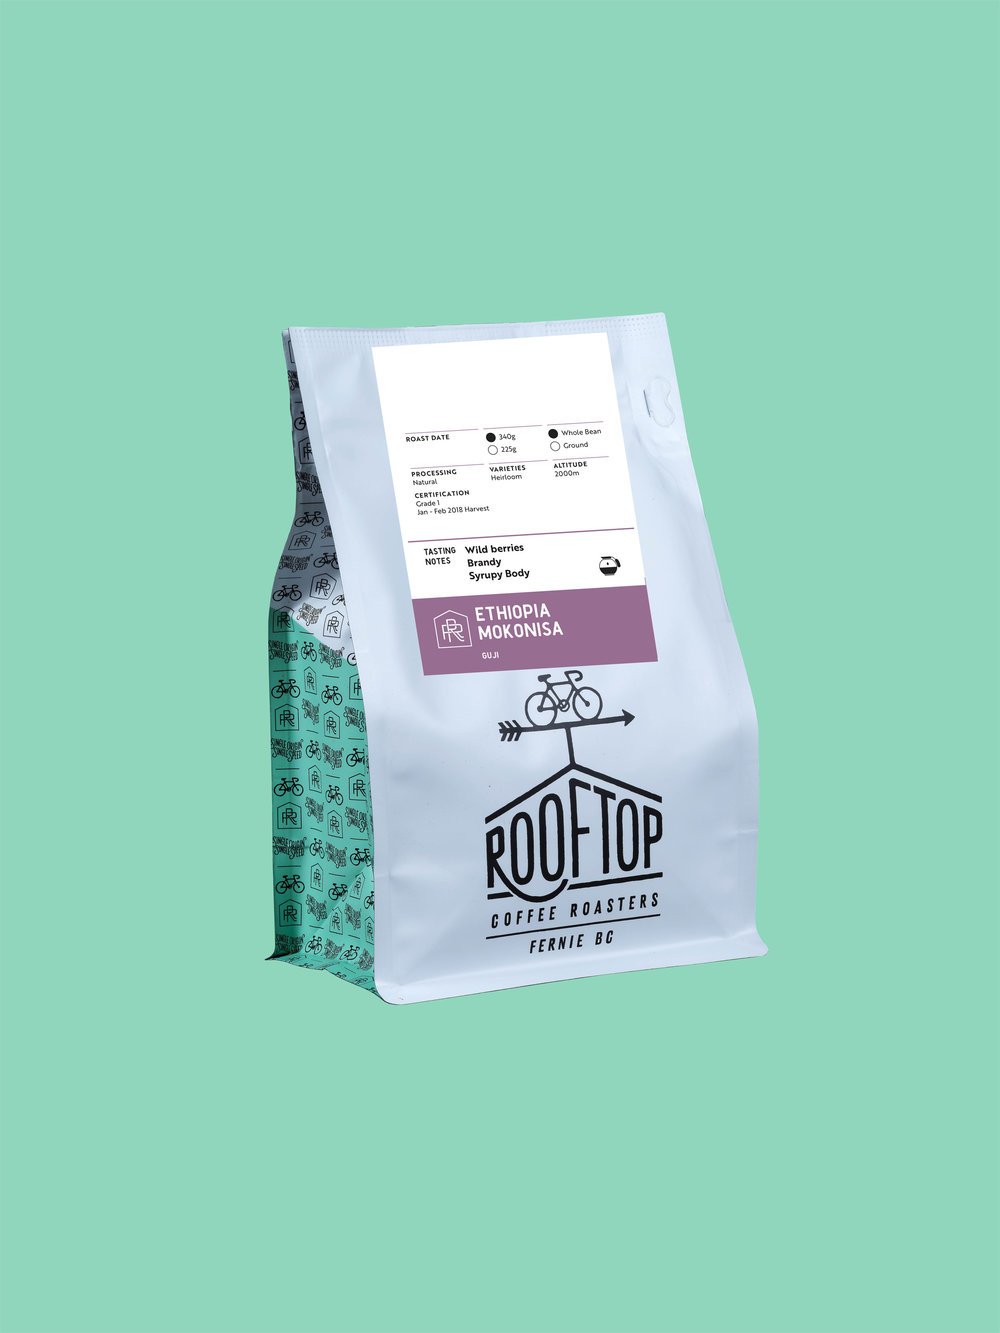 Rooftop Coffee Roasters - For full details on Rooftop or to order some of their coffee visit their website https://www.rooftopcoffeeroasters.comOr visit them @rooftopcoffeeroasters